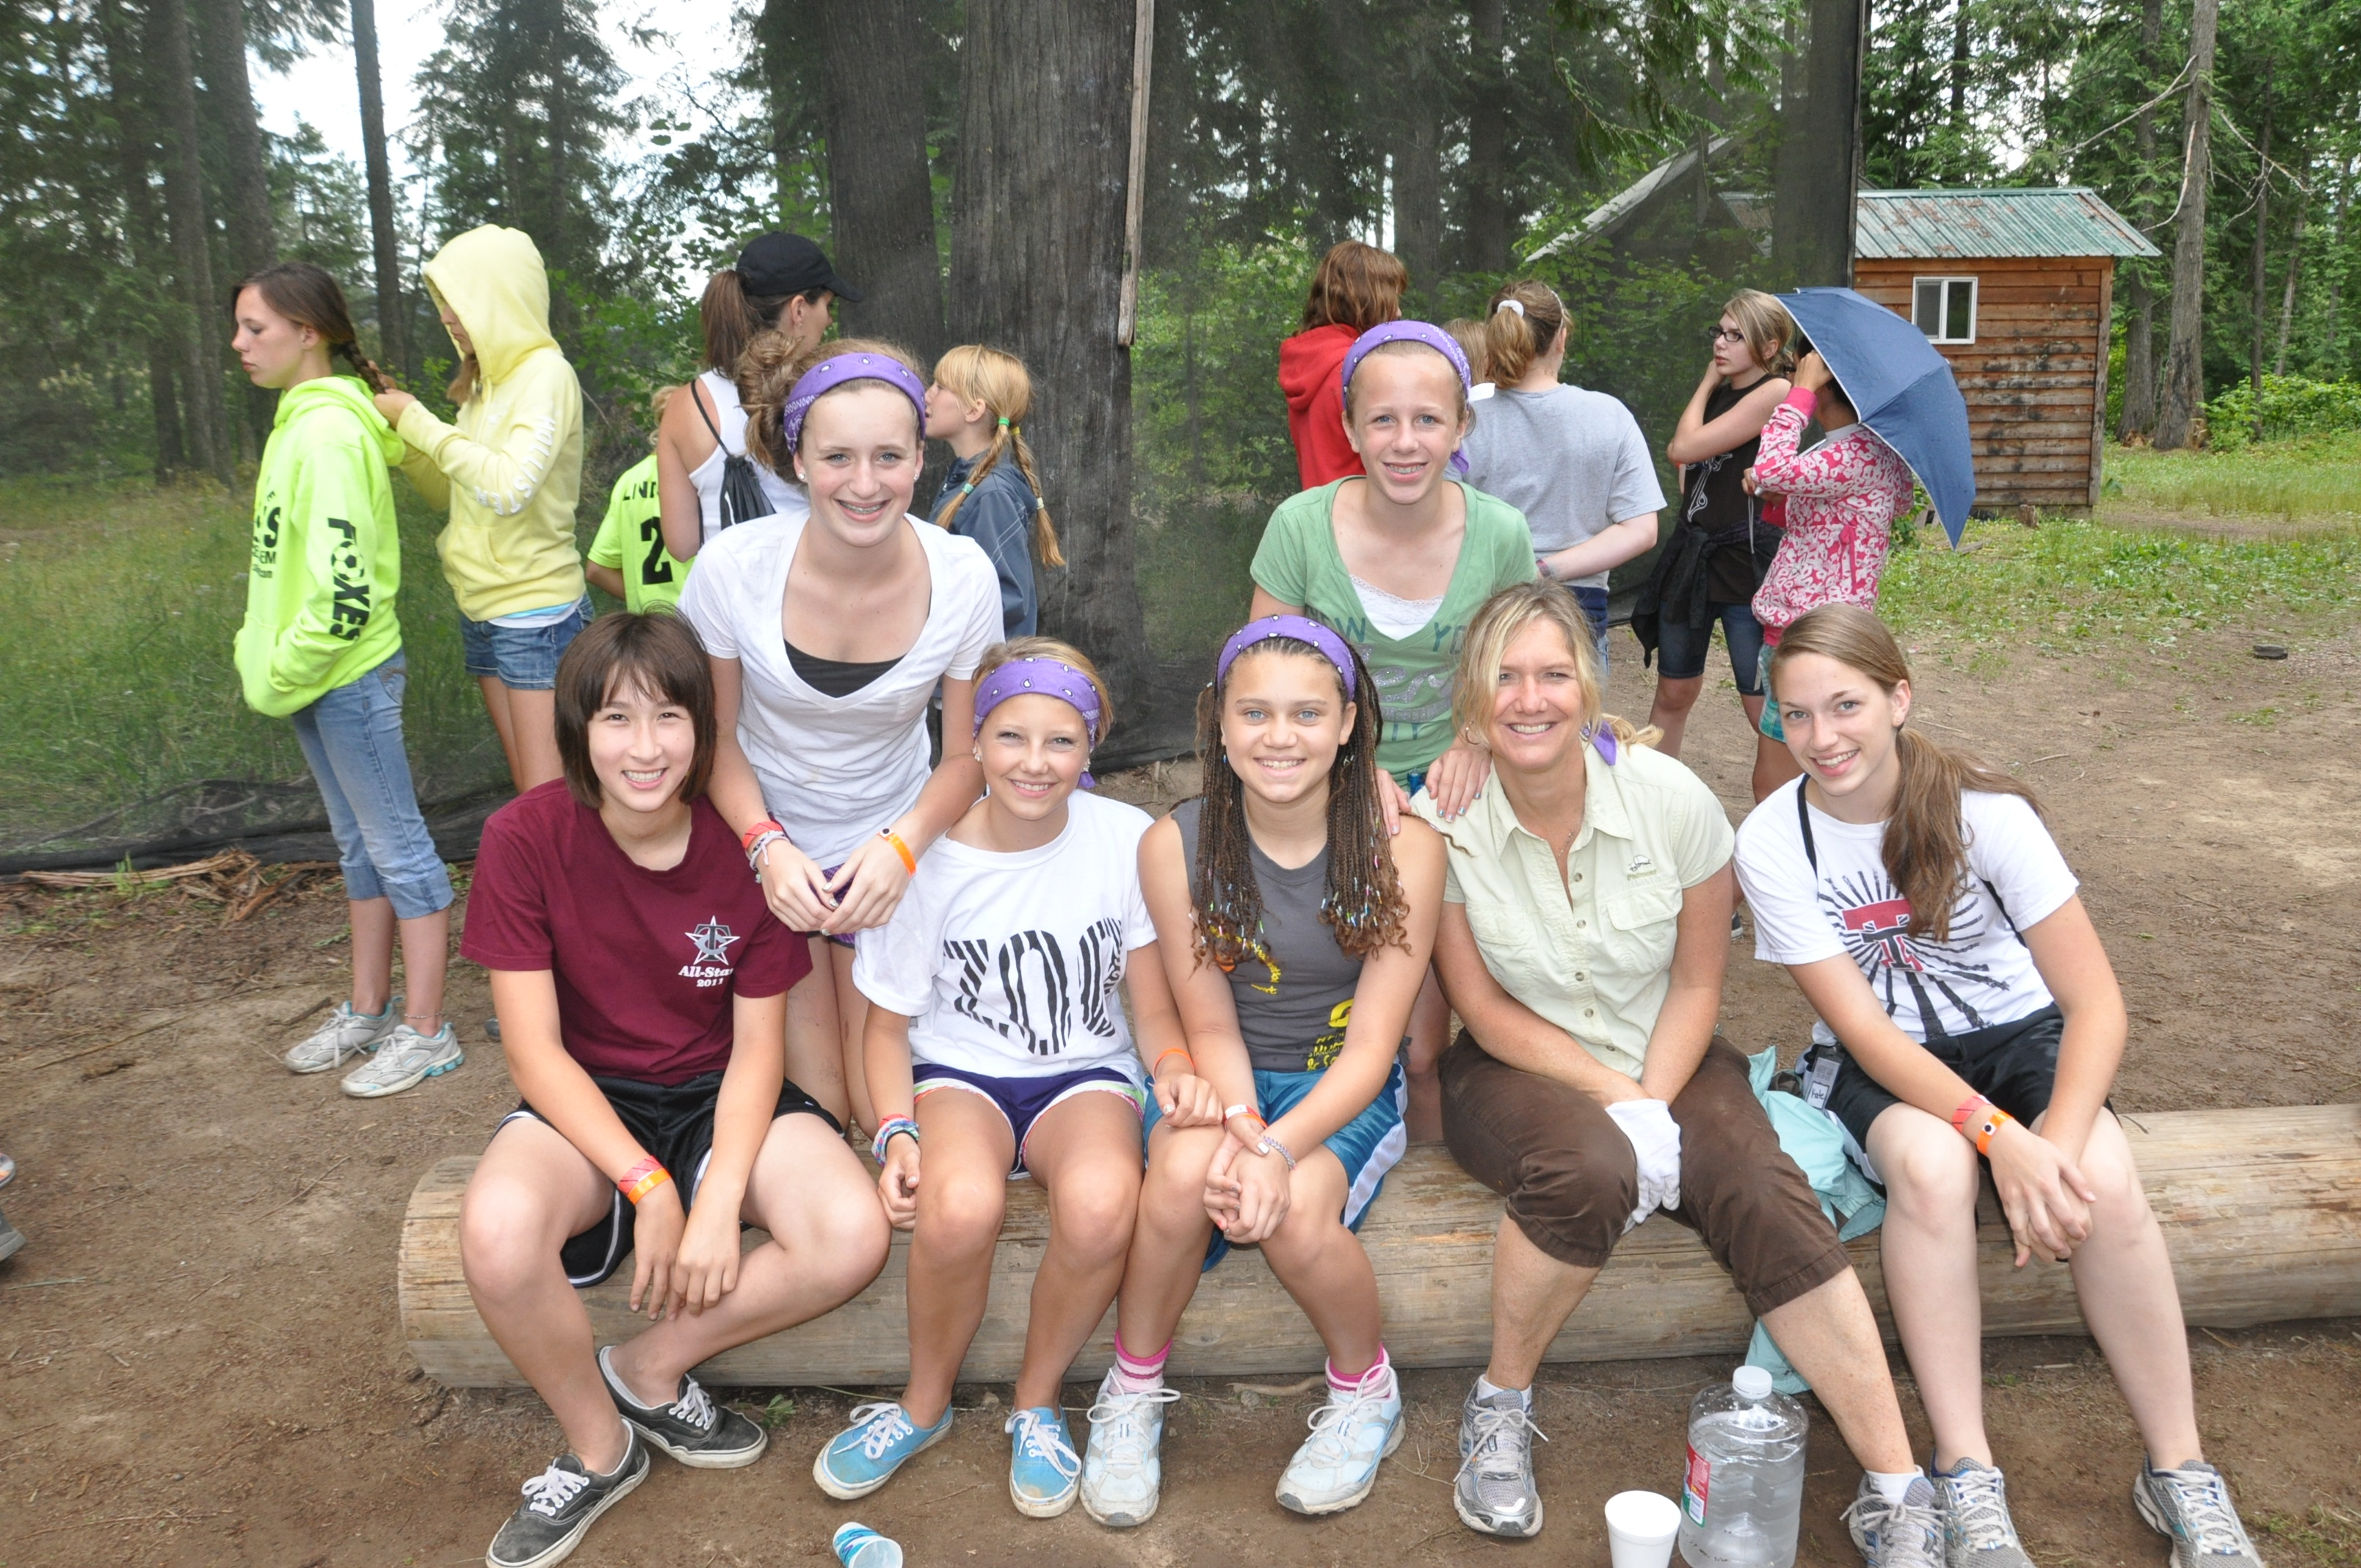 camp creek single christian girls You can learn more about kidder creek adventure camp here campers can expect traditional christian camp activities designed to fit a variety of age groups.